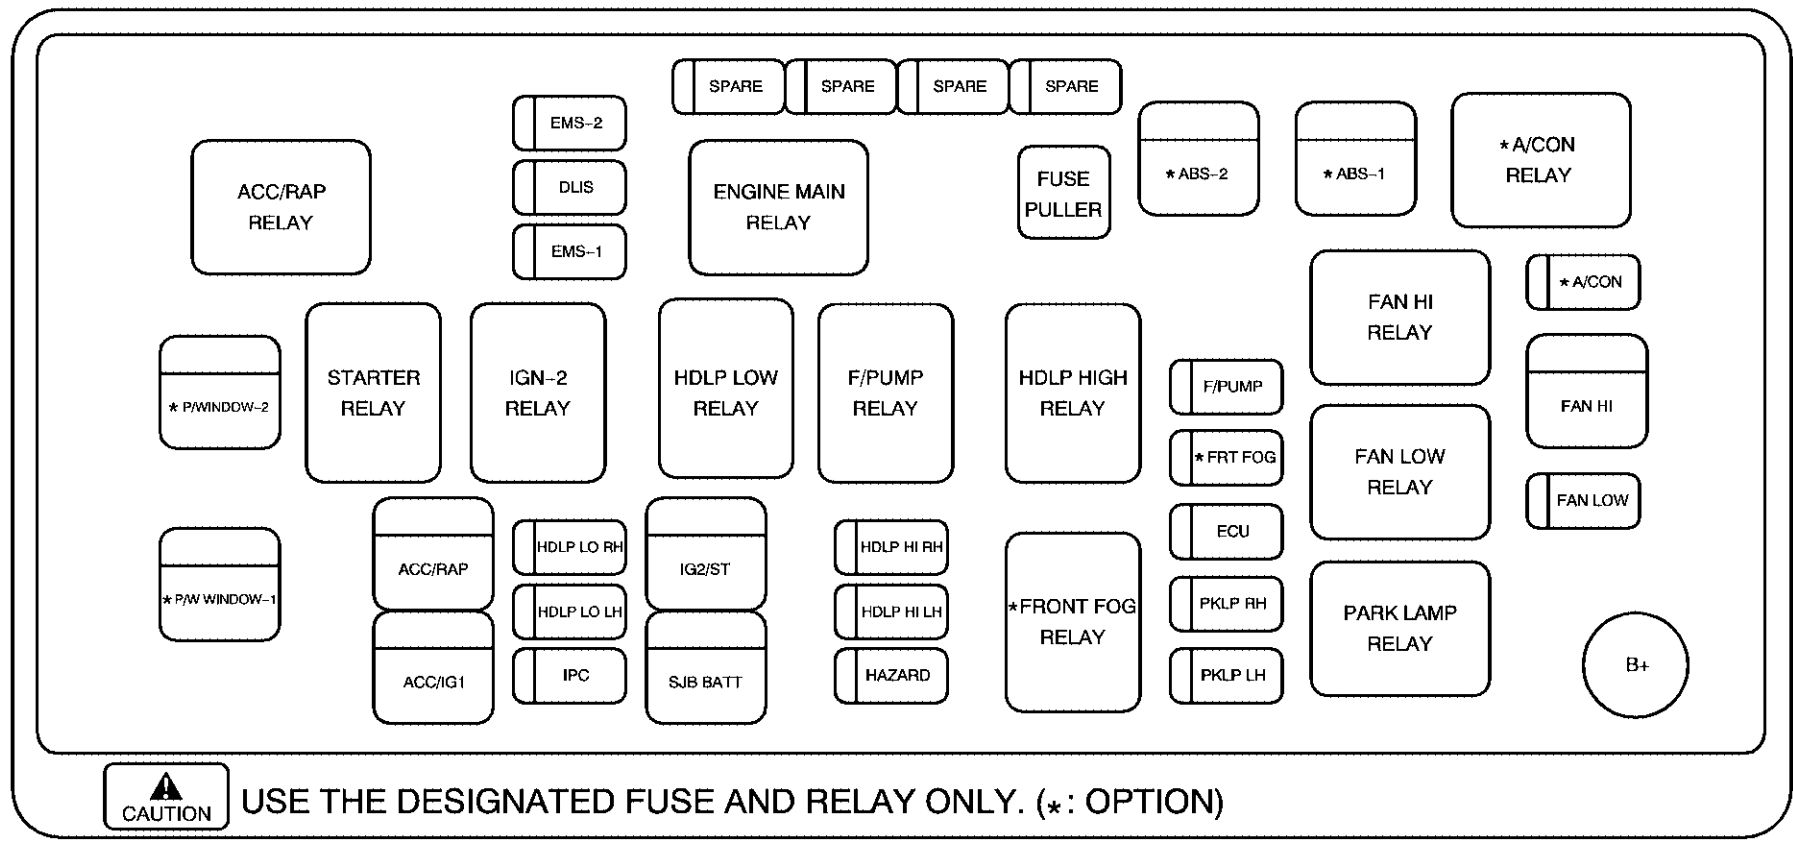 chevrolet aveo fuse box diagram schema diagram database 07 aveo fuse box [ 1793 x 841 Pixel ]